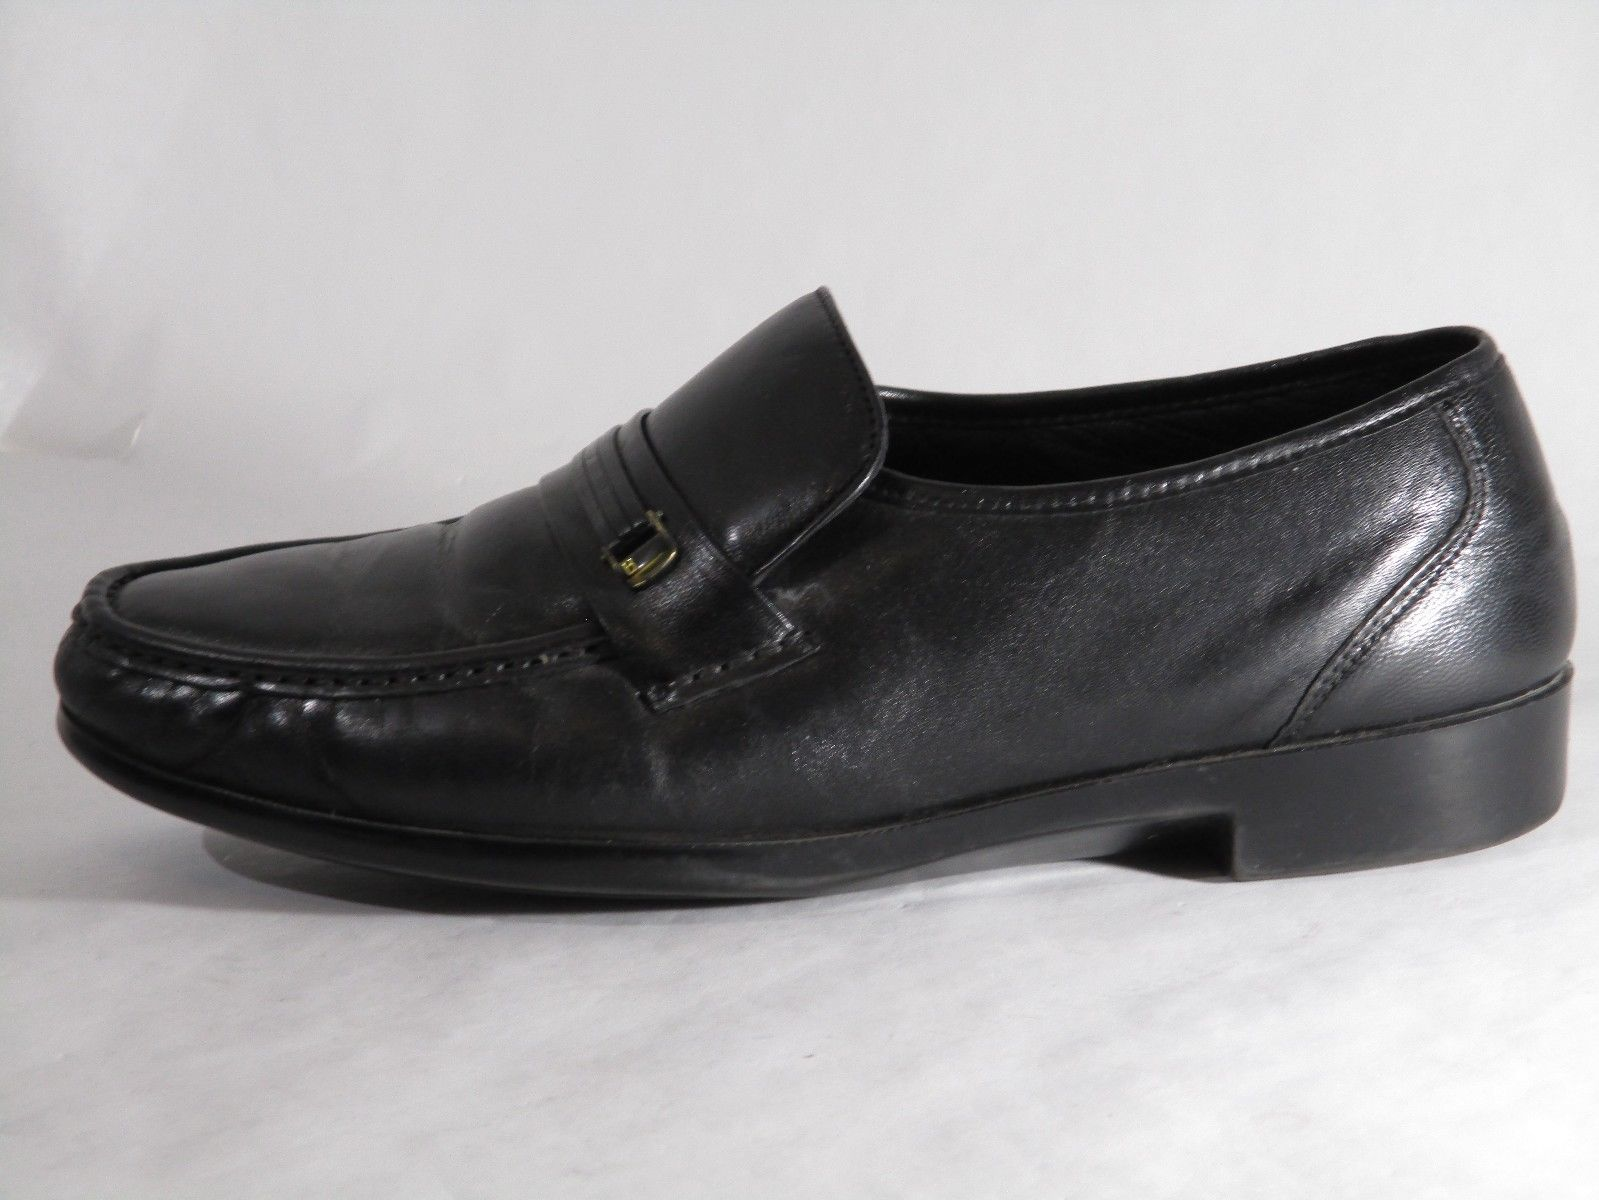 BOSTONIAN Prescott 29052 Black Leather Loafers Mens Slip On Shoes Size 10 EEE